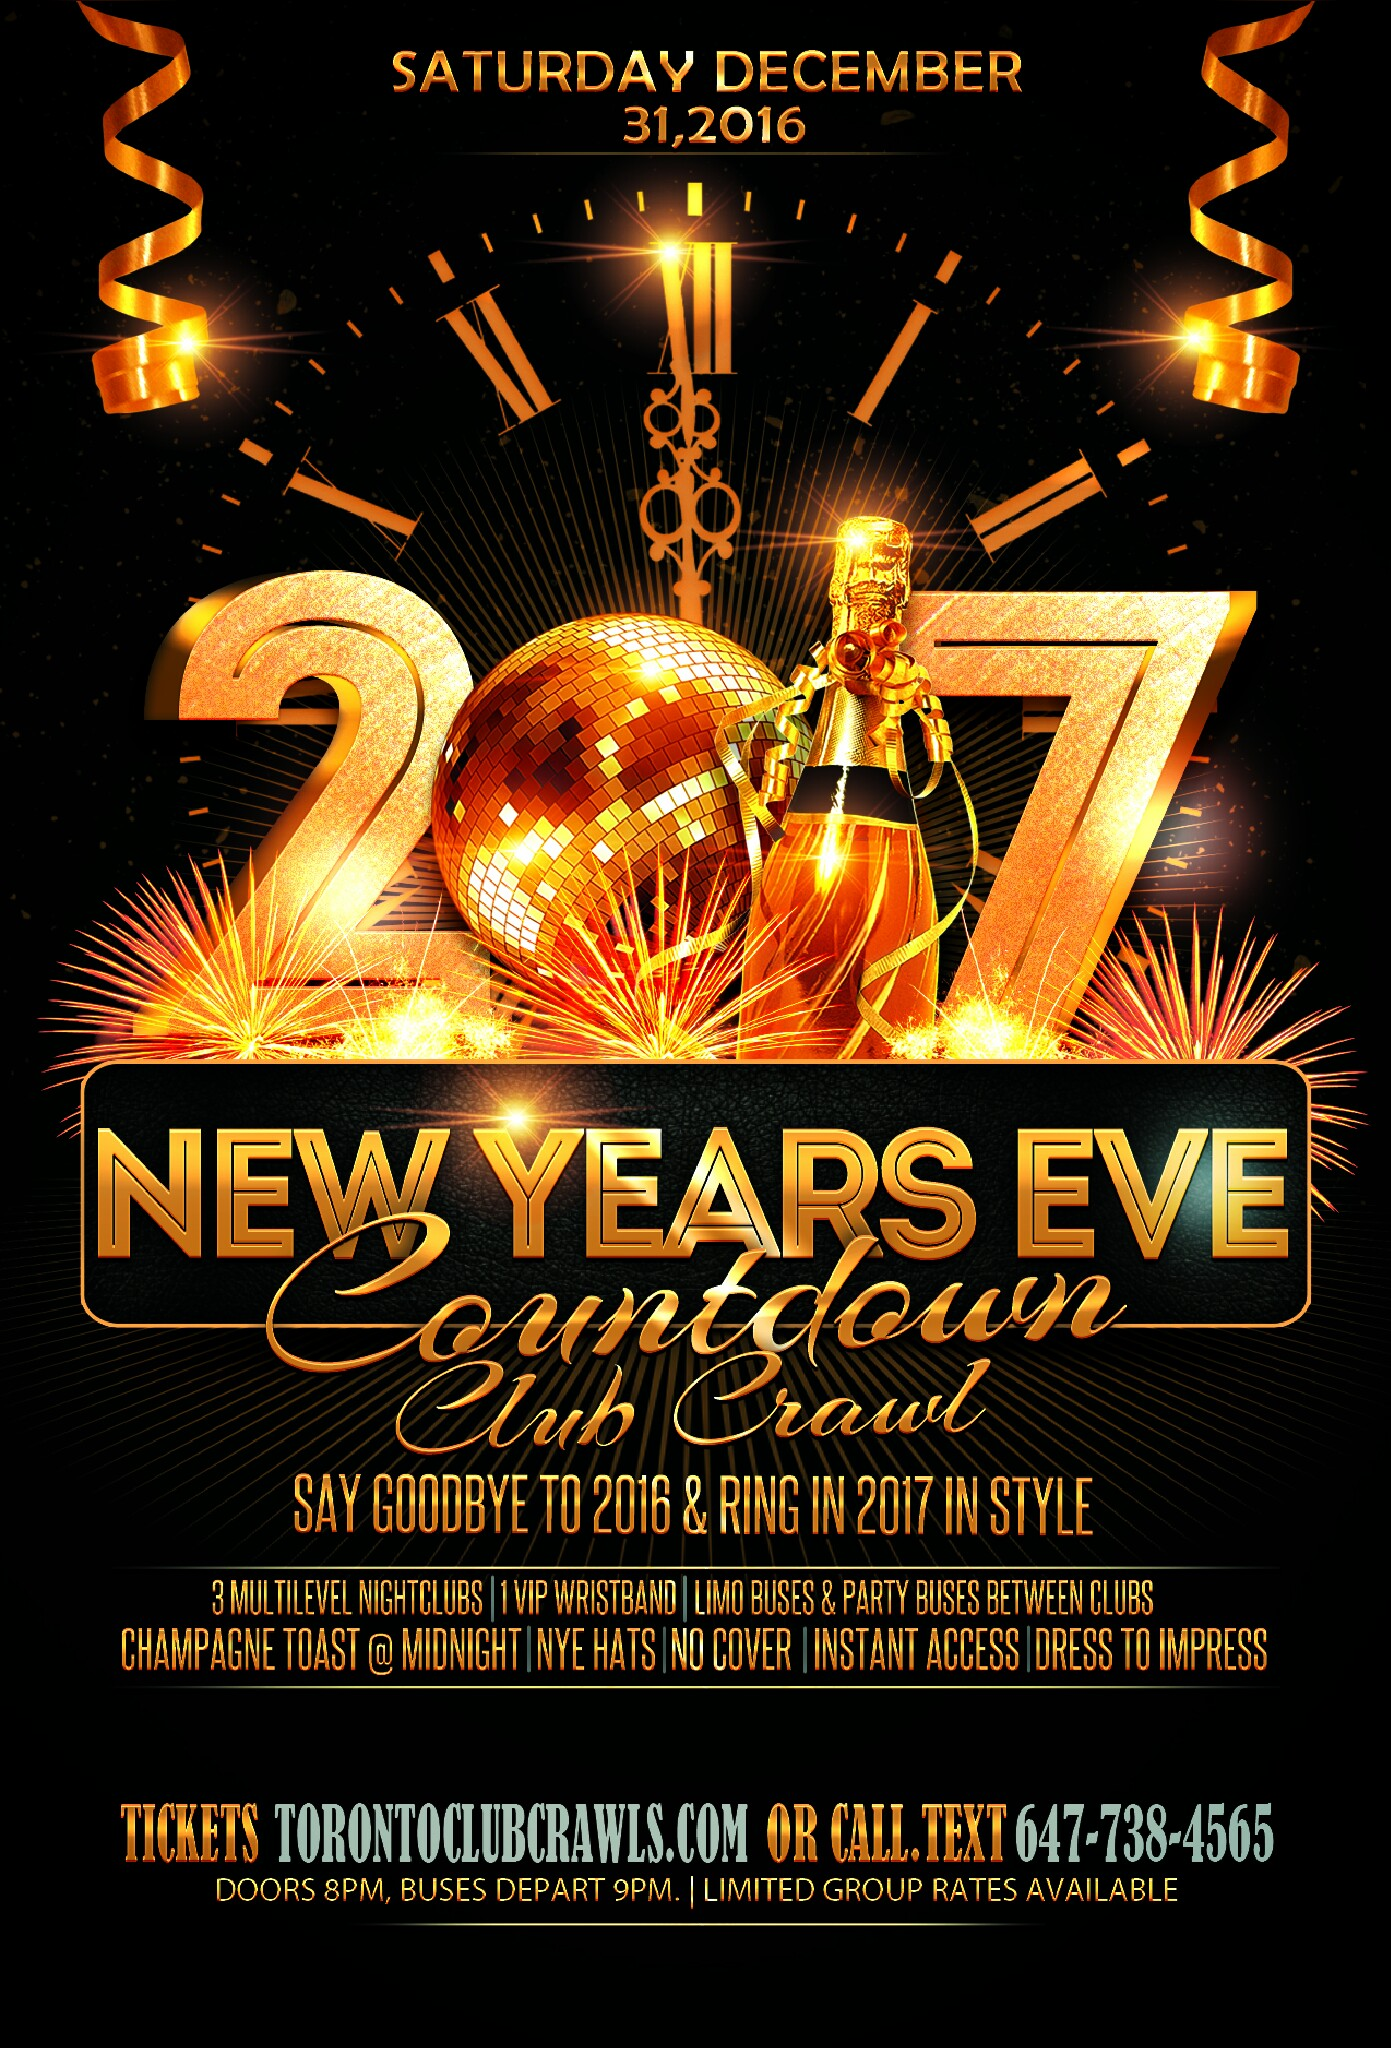 New Years Time Capsule Printable Questionnaire For Kids: Toronto New Years Eve Club Crawl Countdown 2017